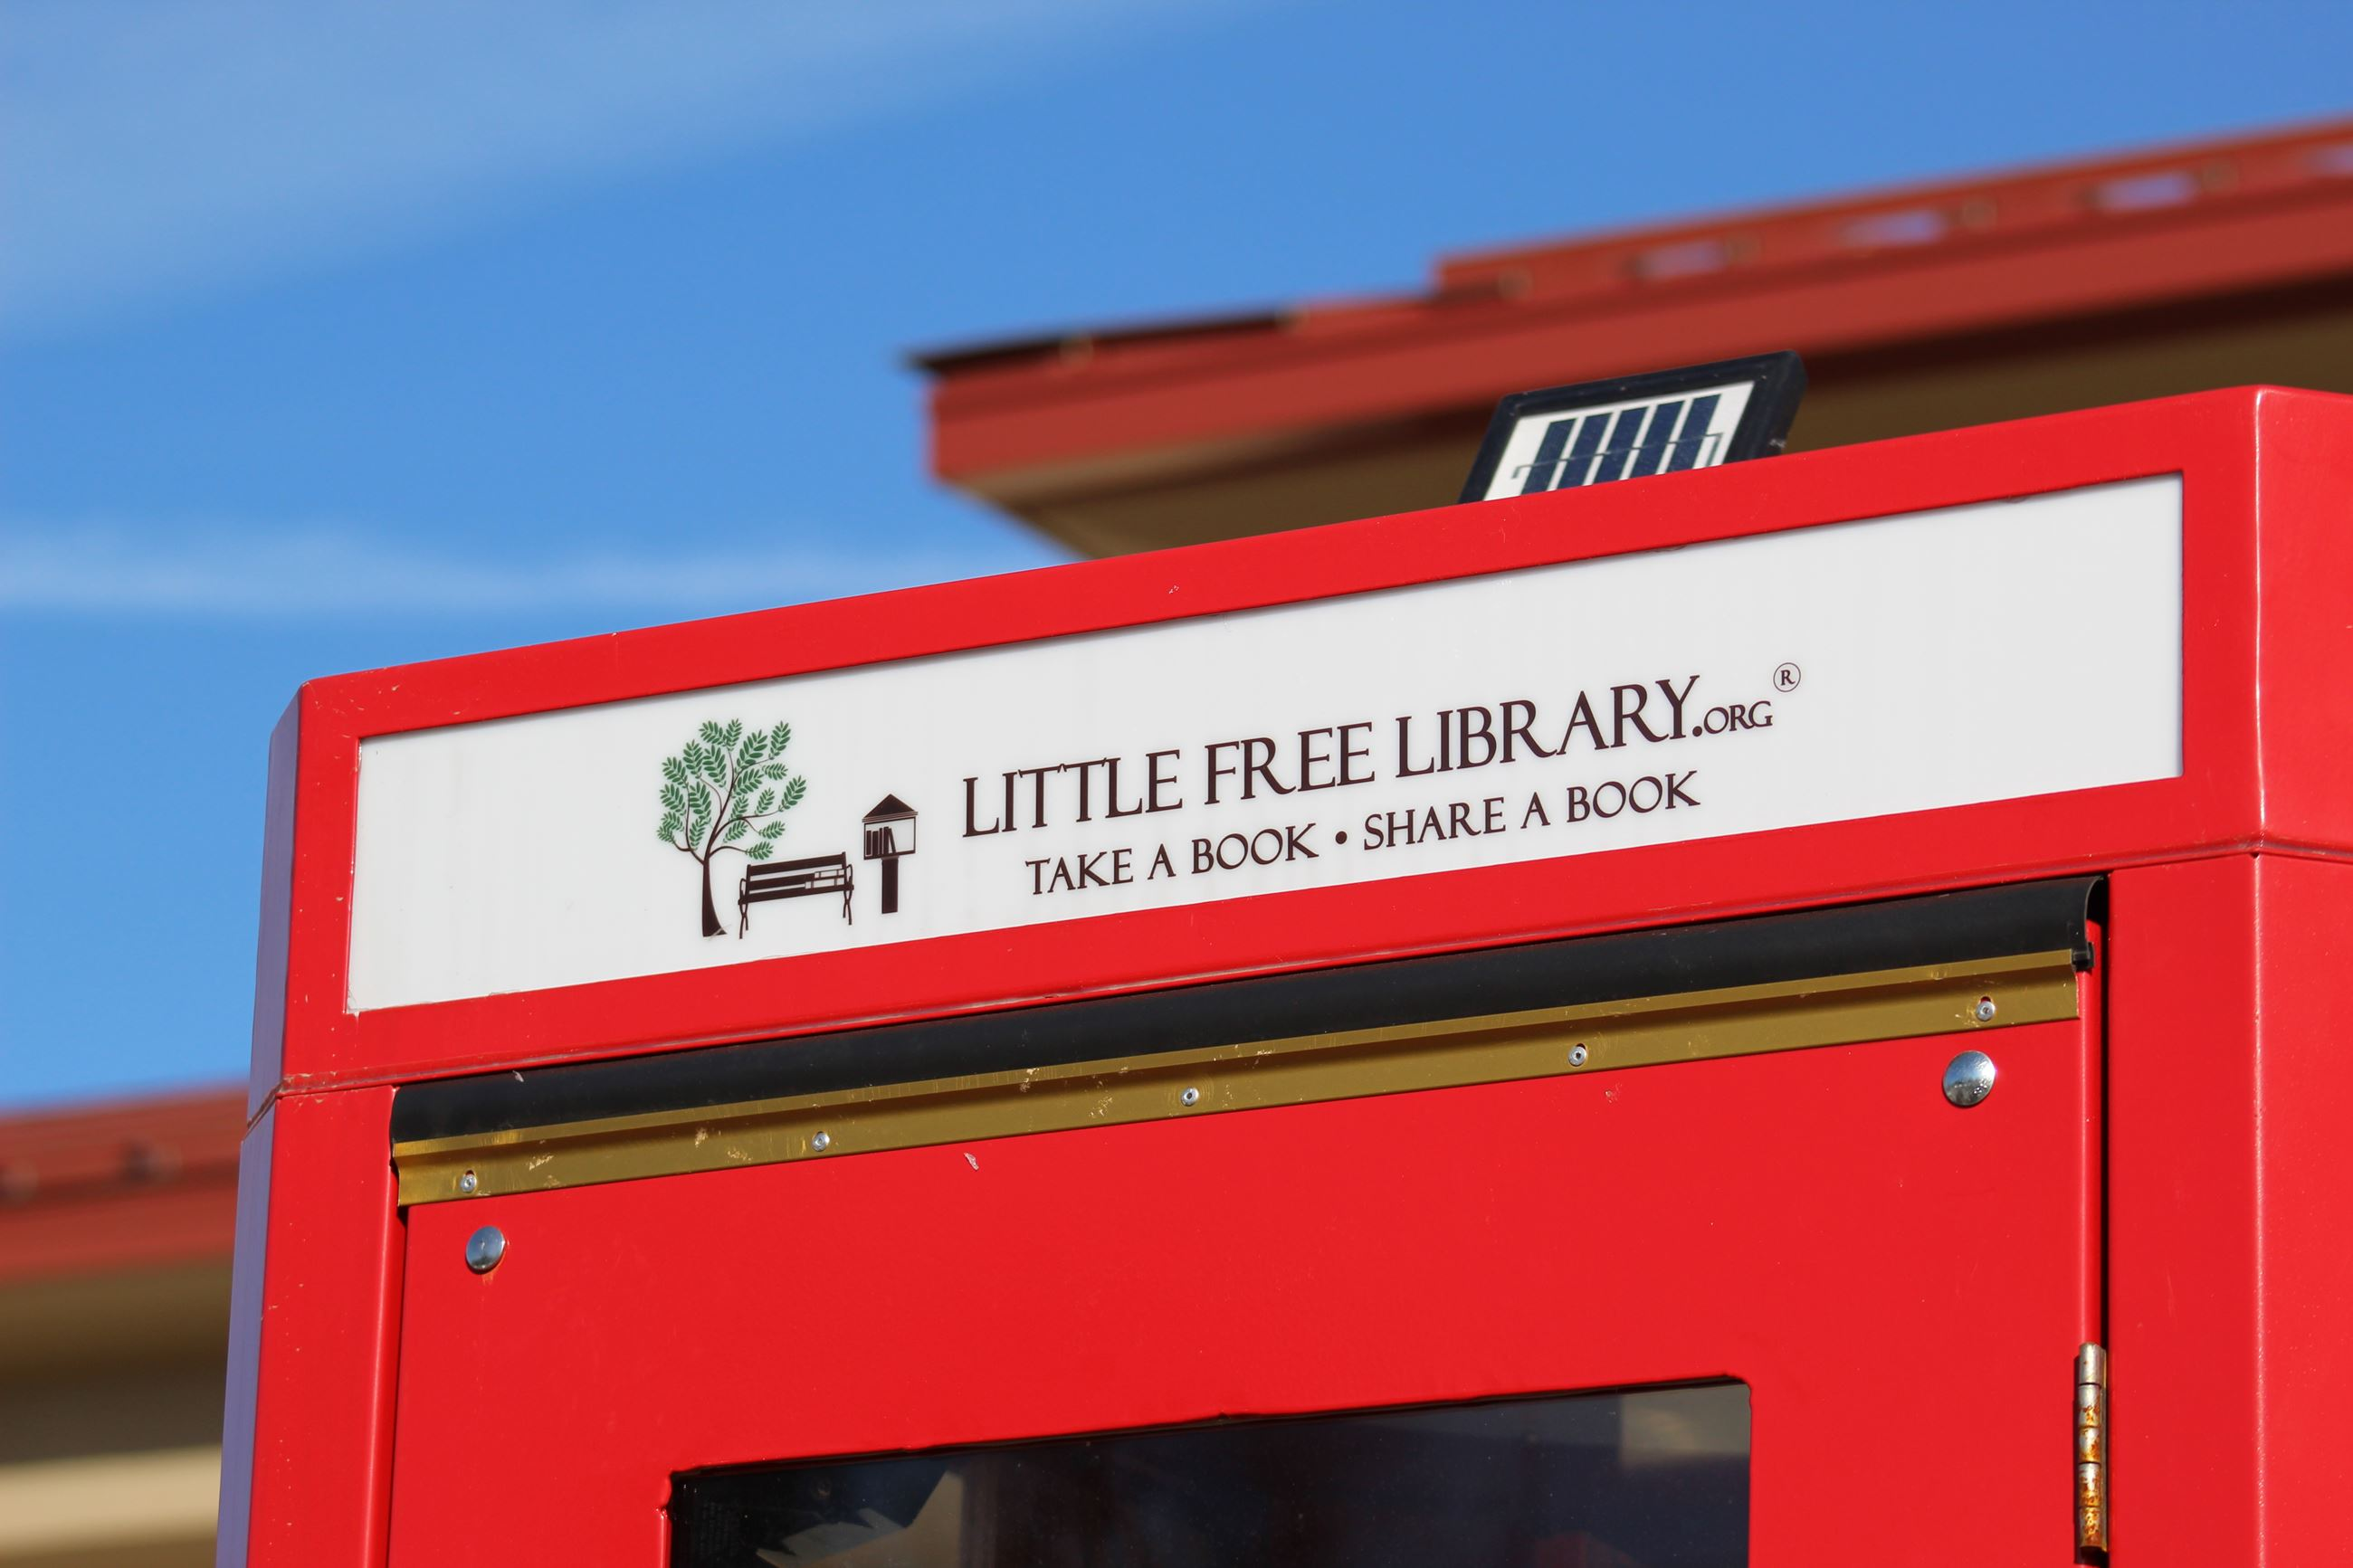 Top corner of a red phone booth with a sign advertising a LITTLE FREE LIBRARY